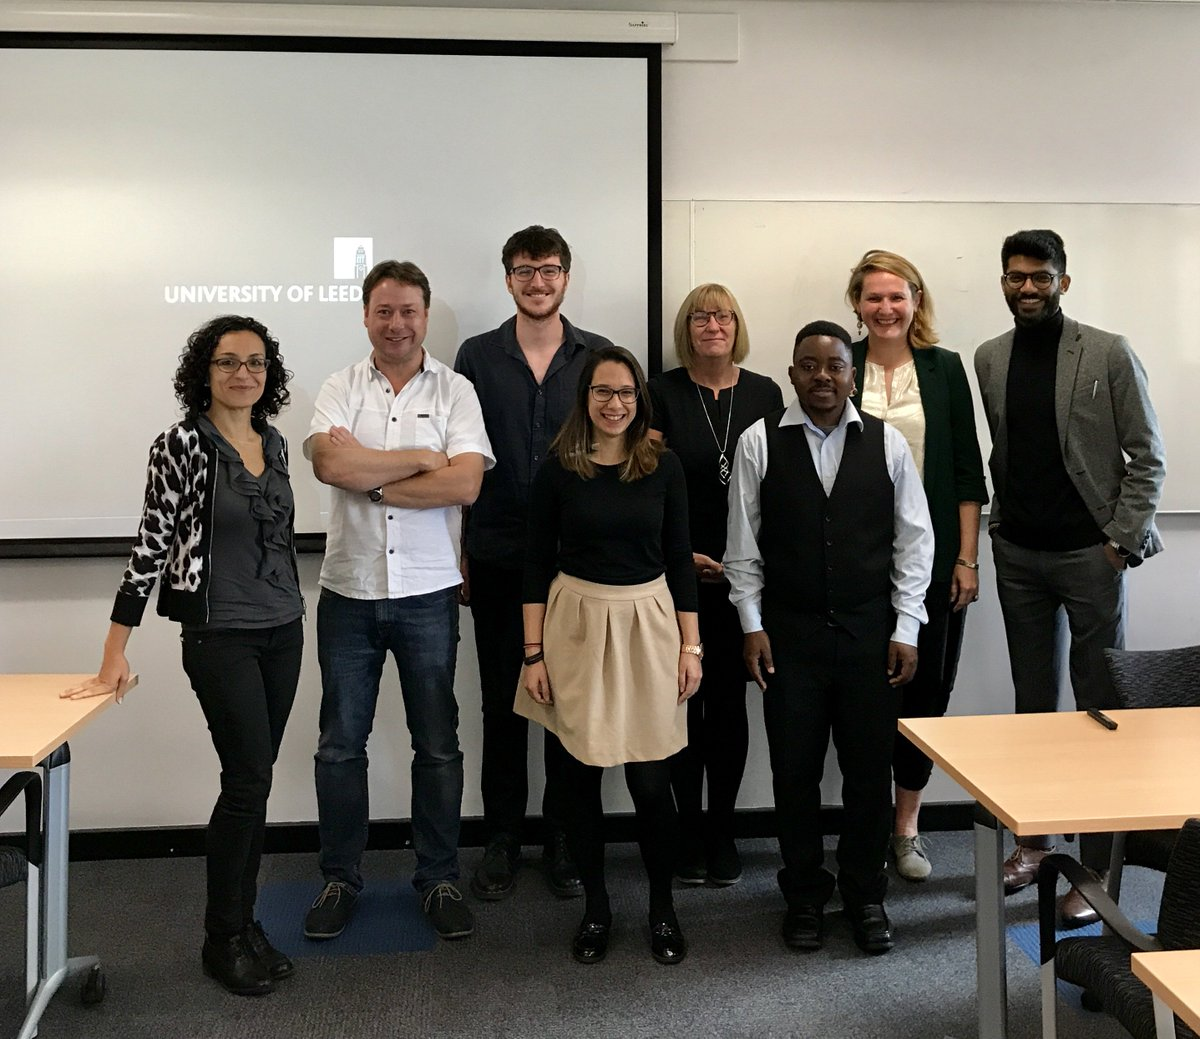 Today our 2016-17 MSc students presented their dissertation  #healtheconomics @AUHE_Leeds Well done all! And welcome to the 2017-18 cohort!<br>http://pic.twitter.com/4EGOZeNums